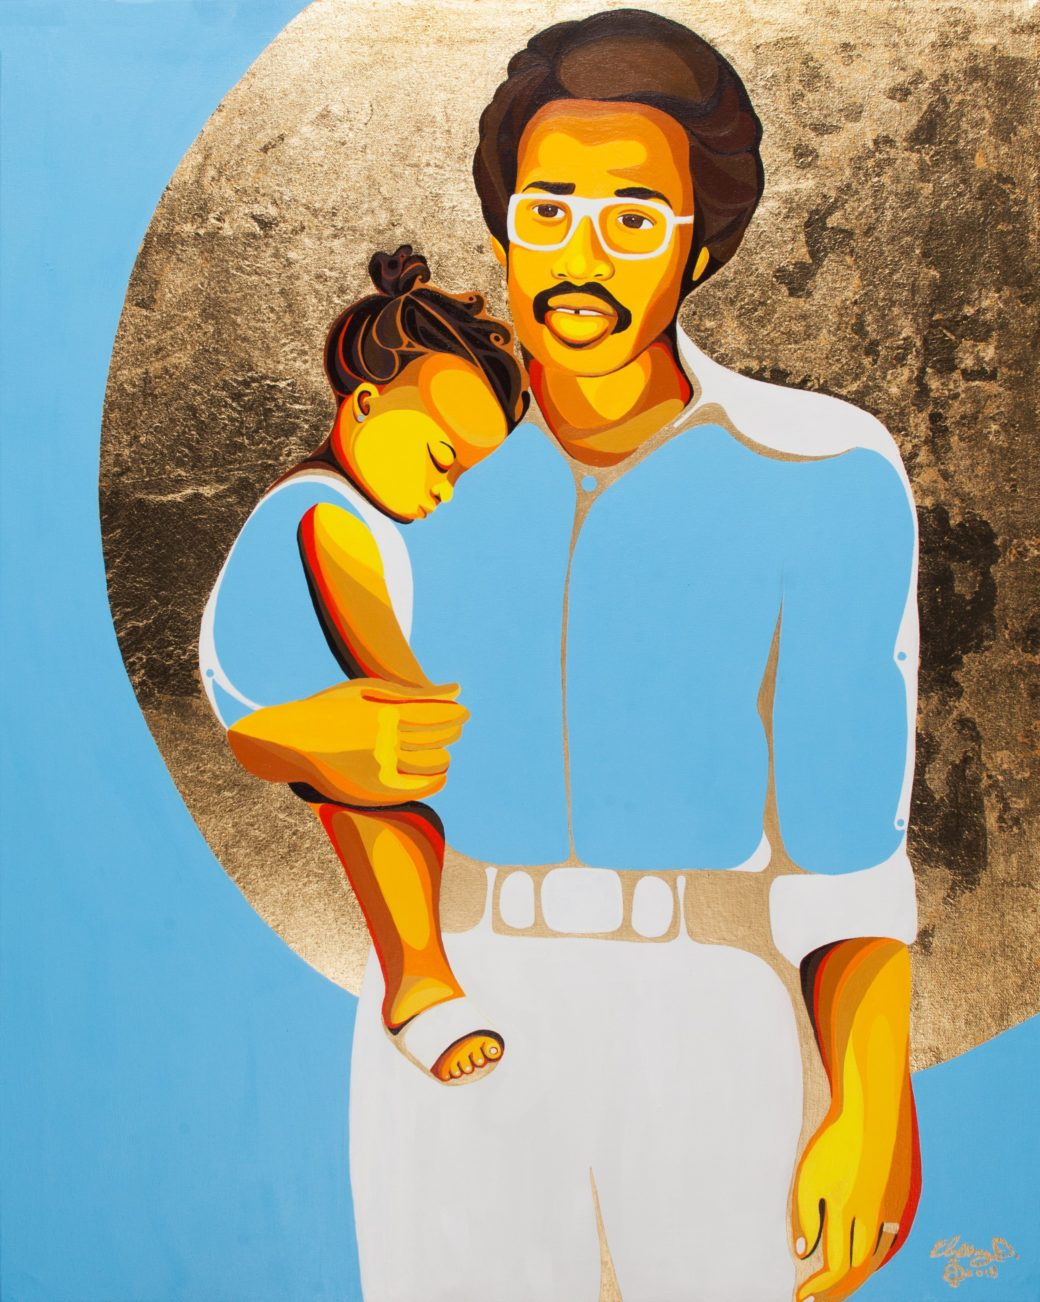 A painting of a Black man in glasses and a blue shirt holding a small child